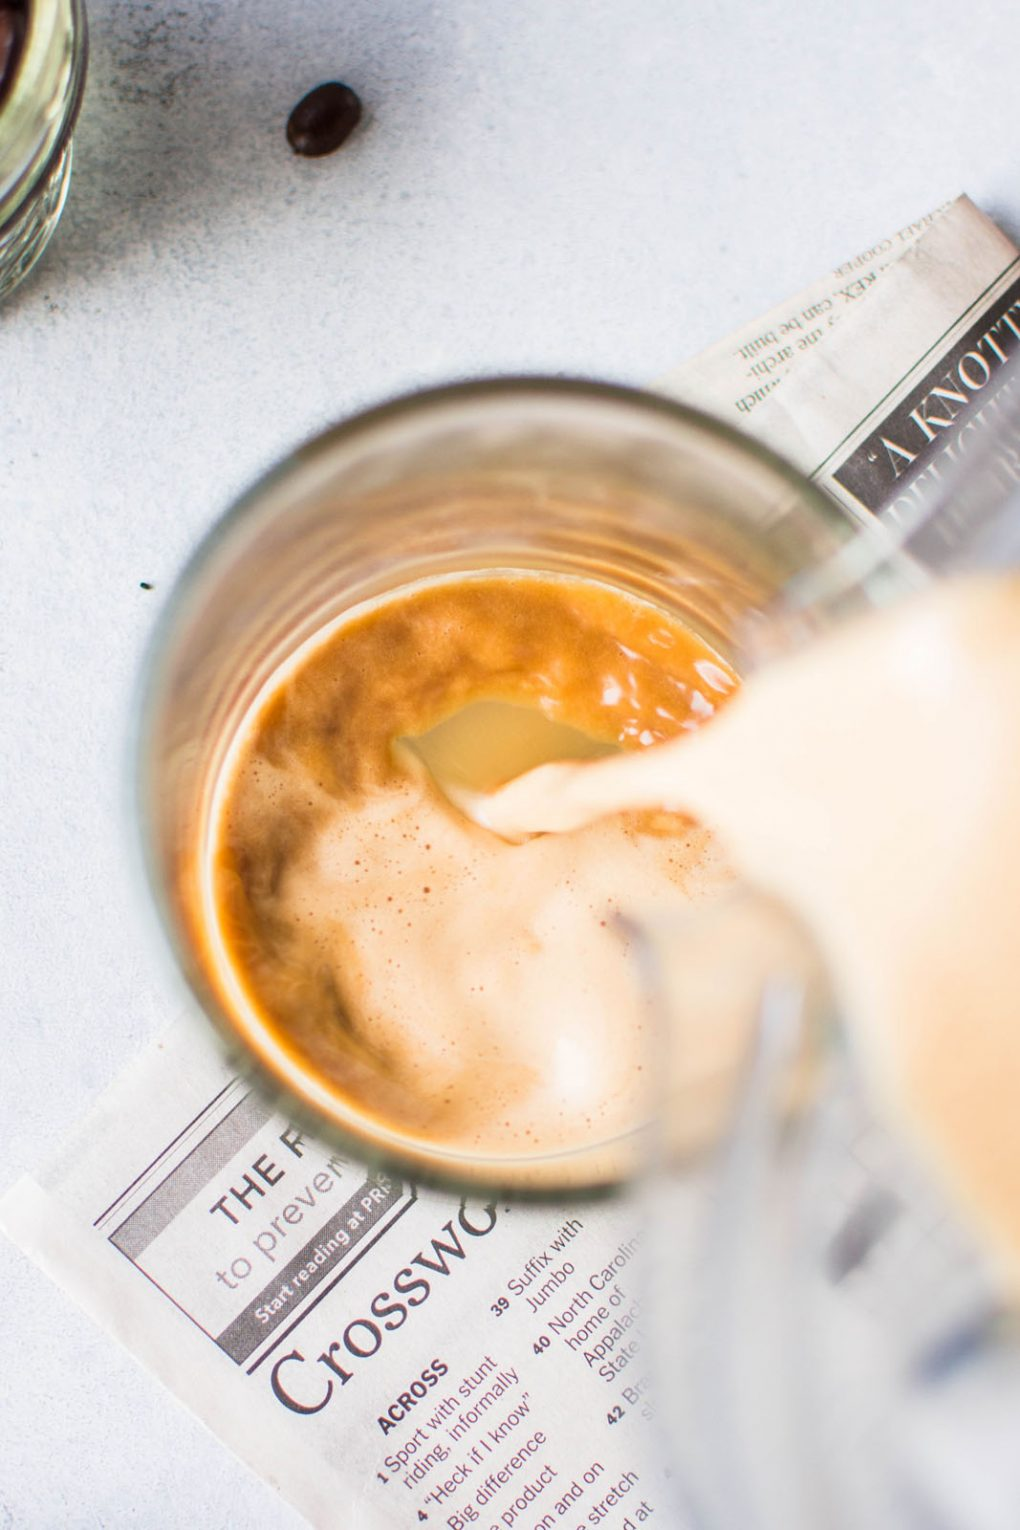 Overhead shot of a blender pouring creamy bulletproof coffee into a glass mug. On a light colored background.